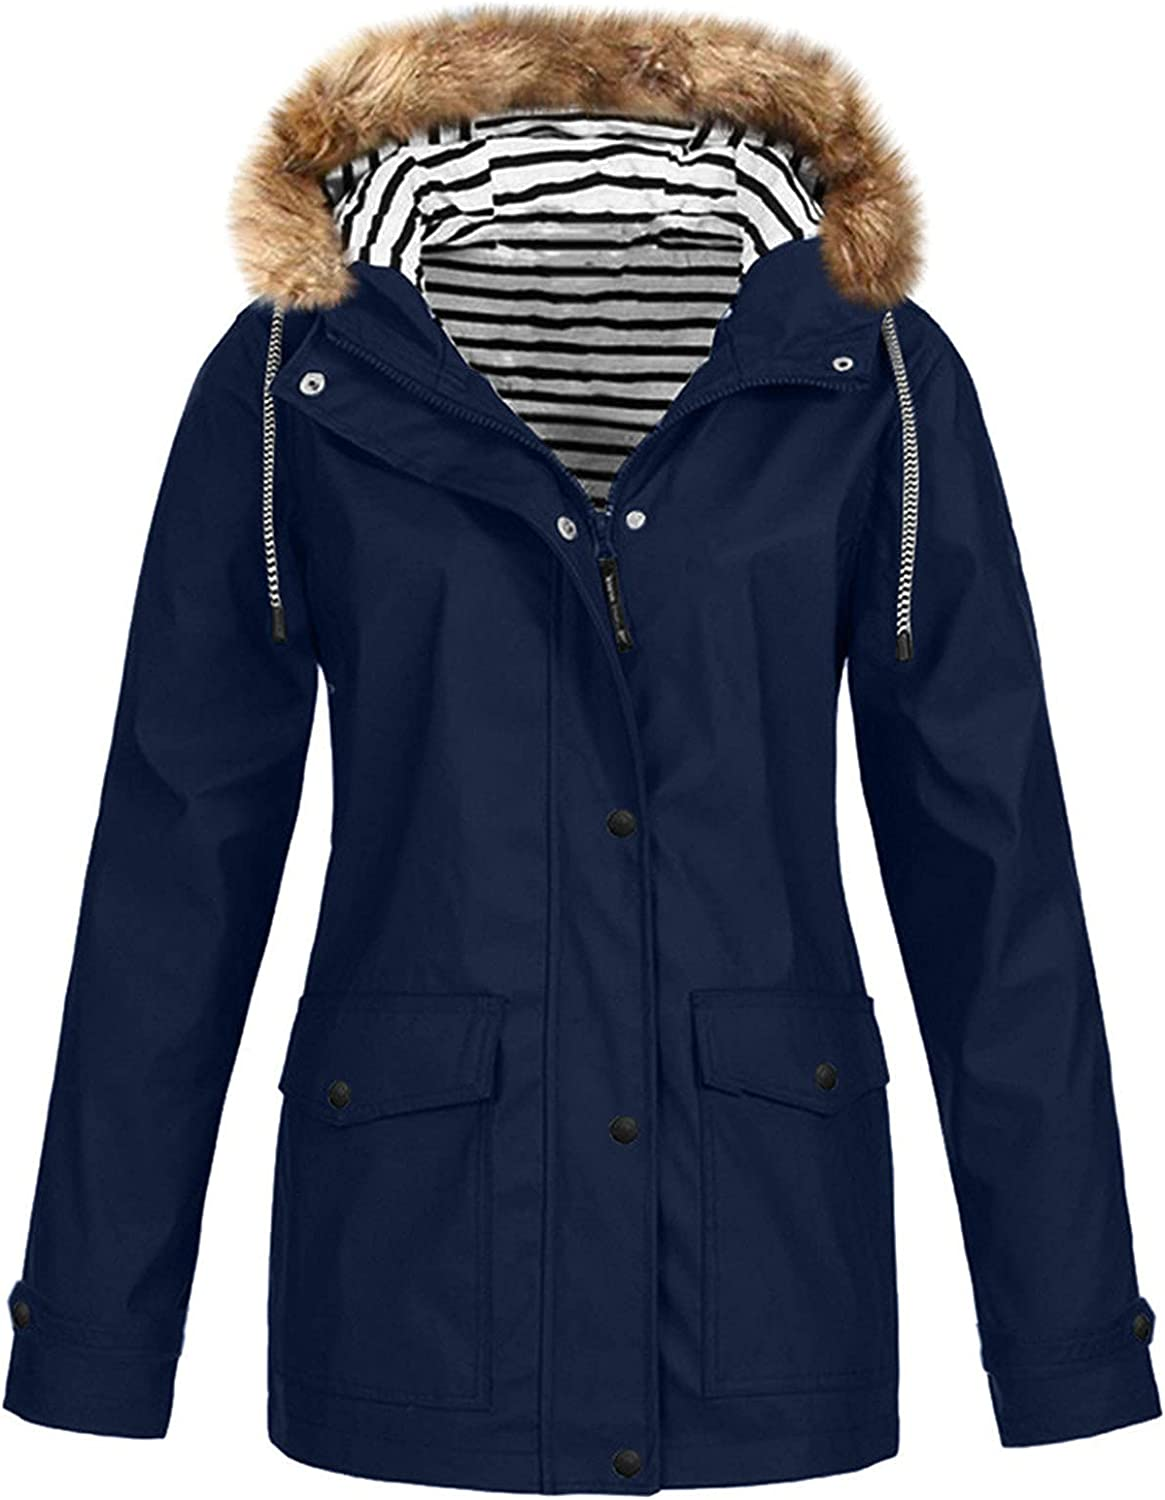 Women's Trench Coats,Women's Plus Plush Hooded Large Outerwear Outdoor Raincoat Waterproof and Windproof Solid Color Jackets